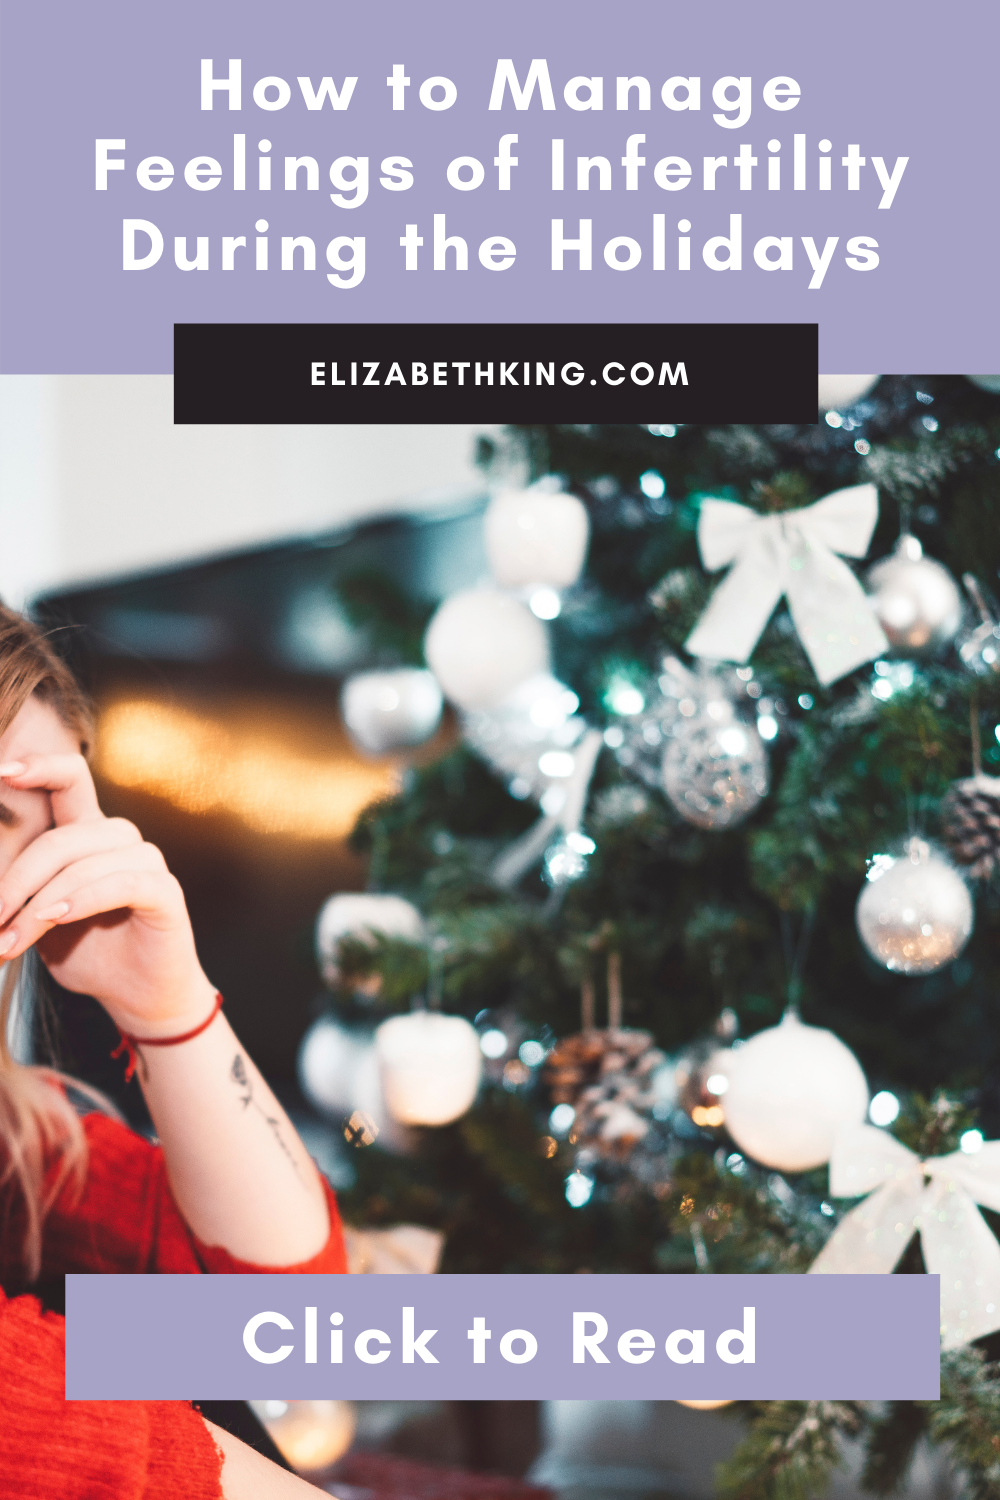 How to Manage Feelings of Infertility During the Holidays | ElizabethKing.com